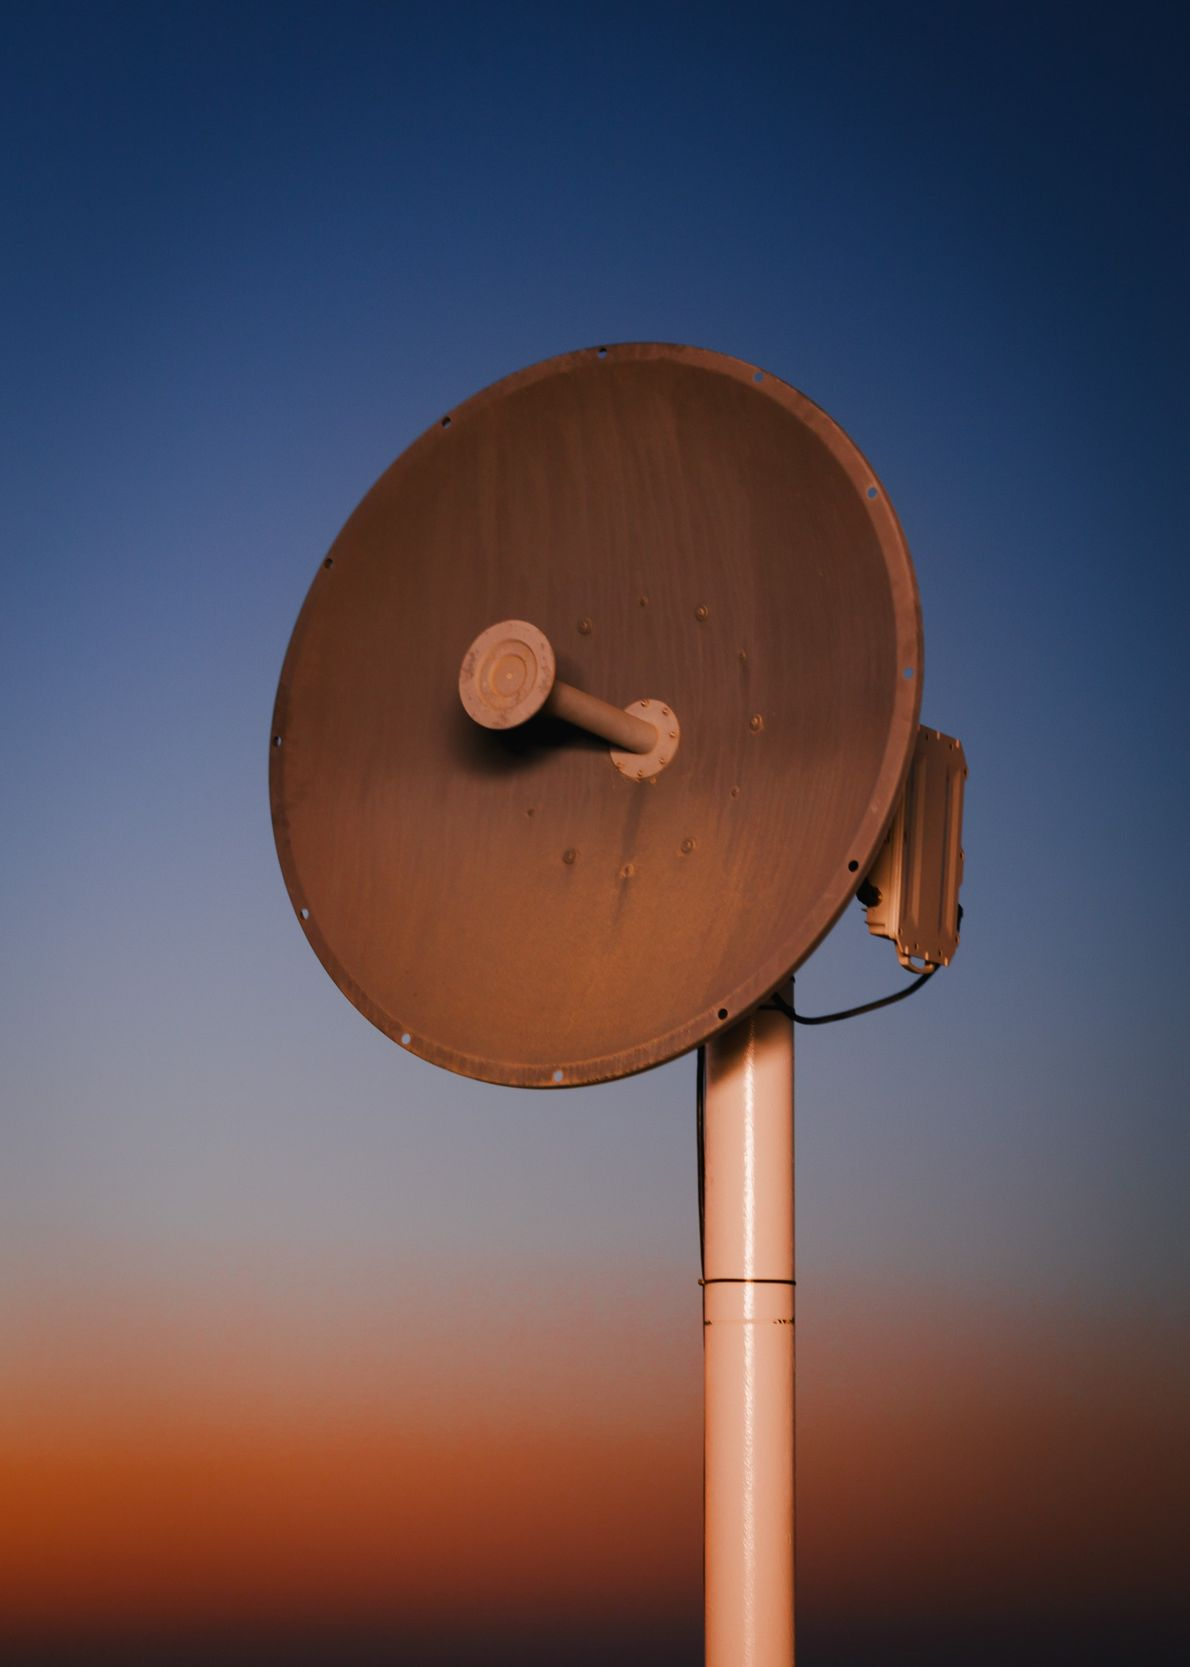 A microwave antenna provides communication services to Kepler Station, which was built in an undisclosed location ...